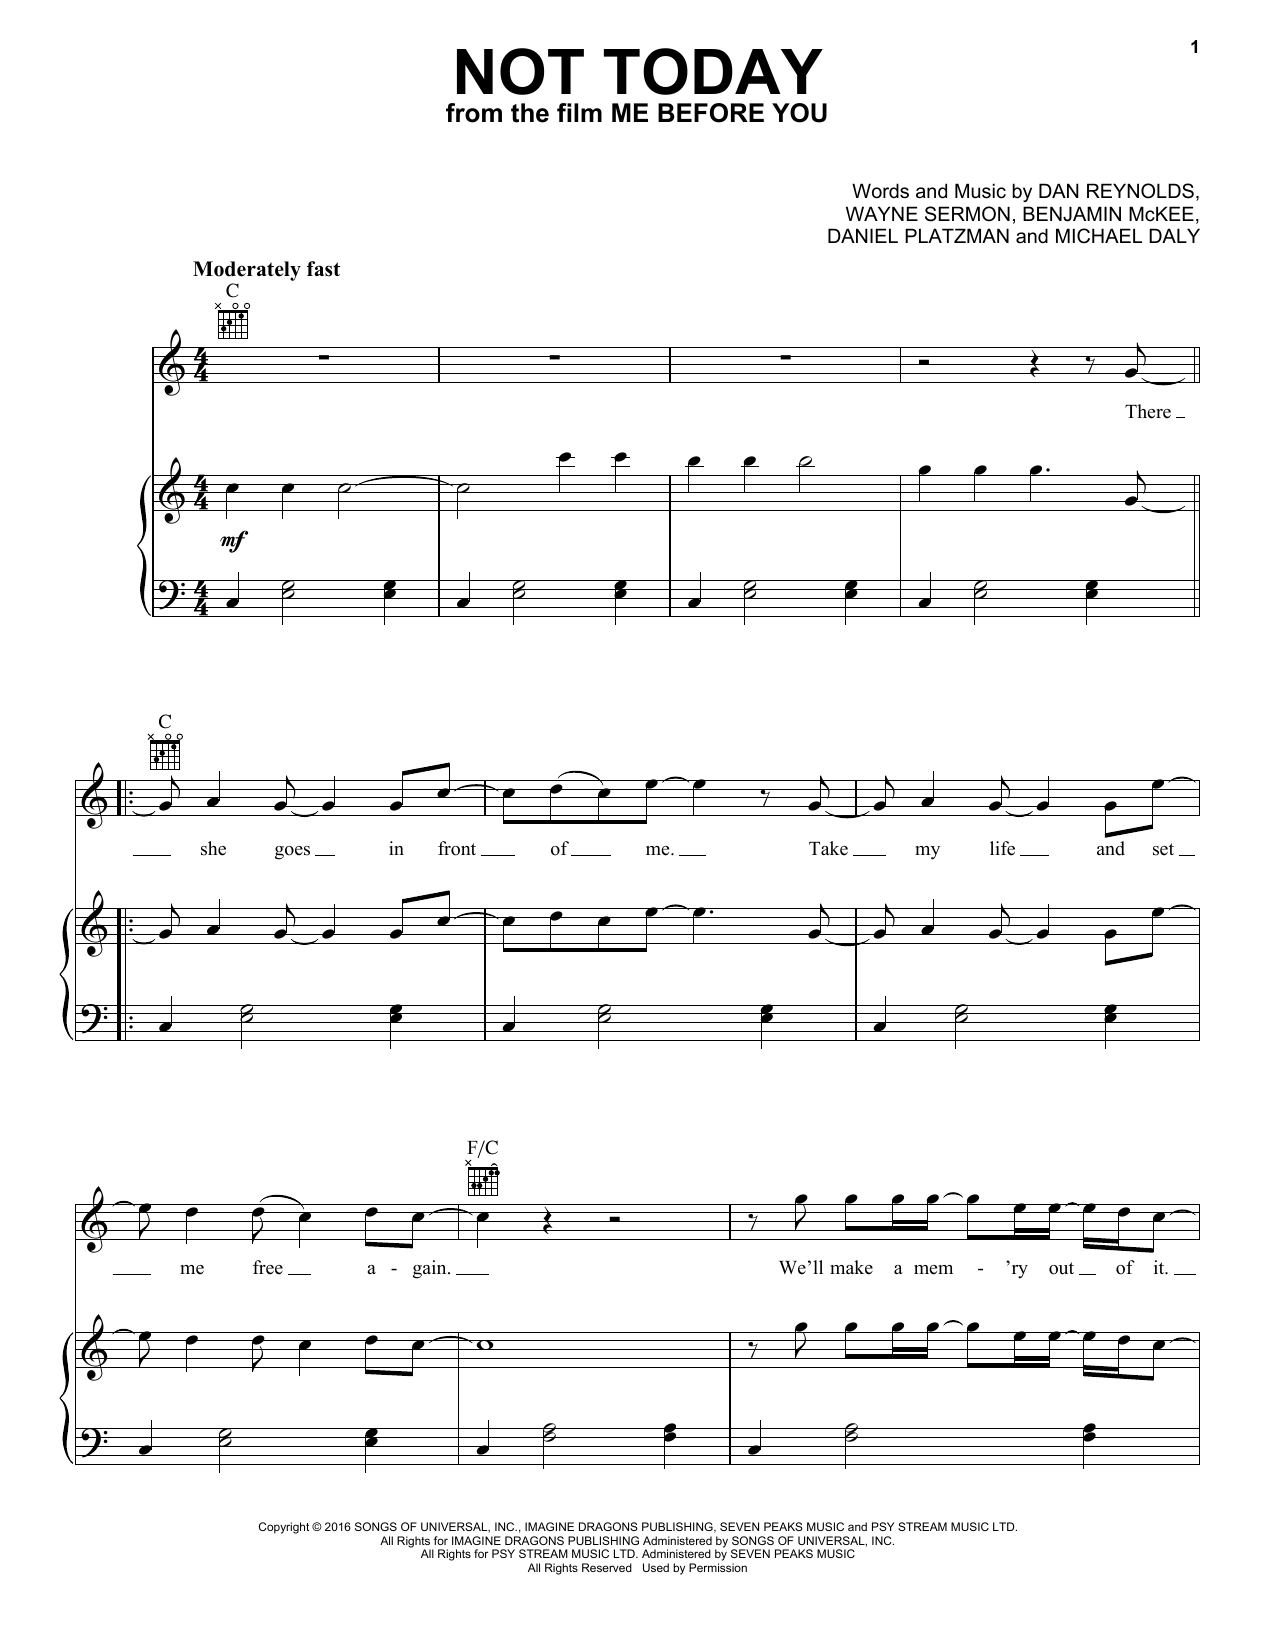 Imagine Dragons Not Today (from Me Before You) sheet music notes and chords. Download Printable PDF.